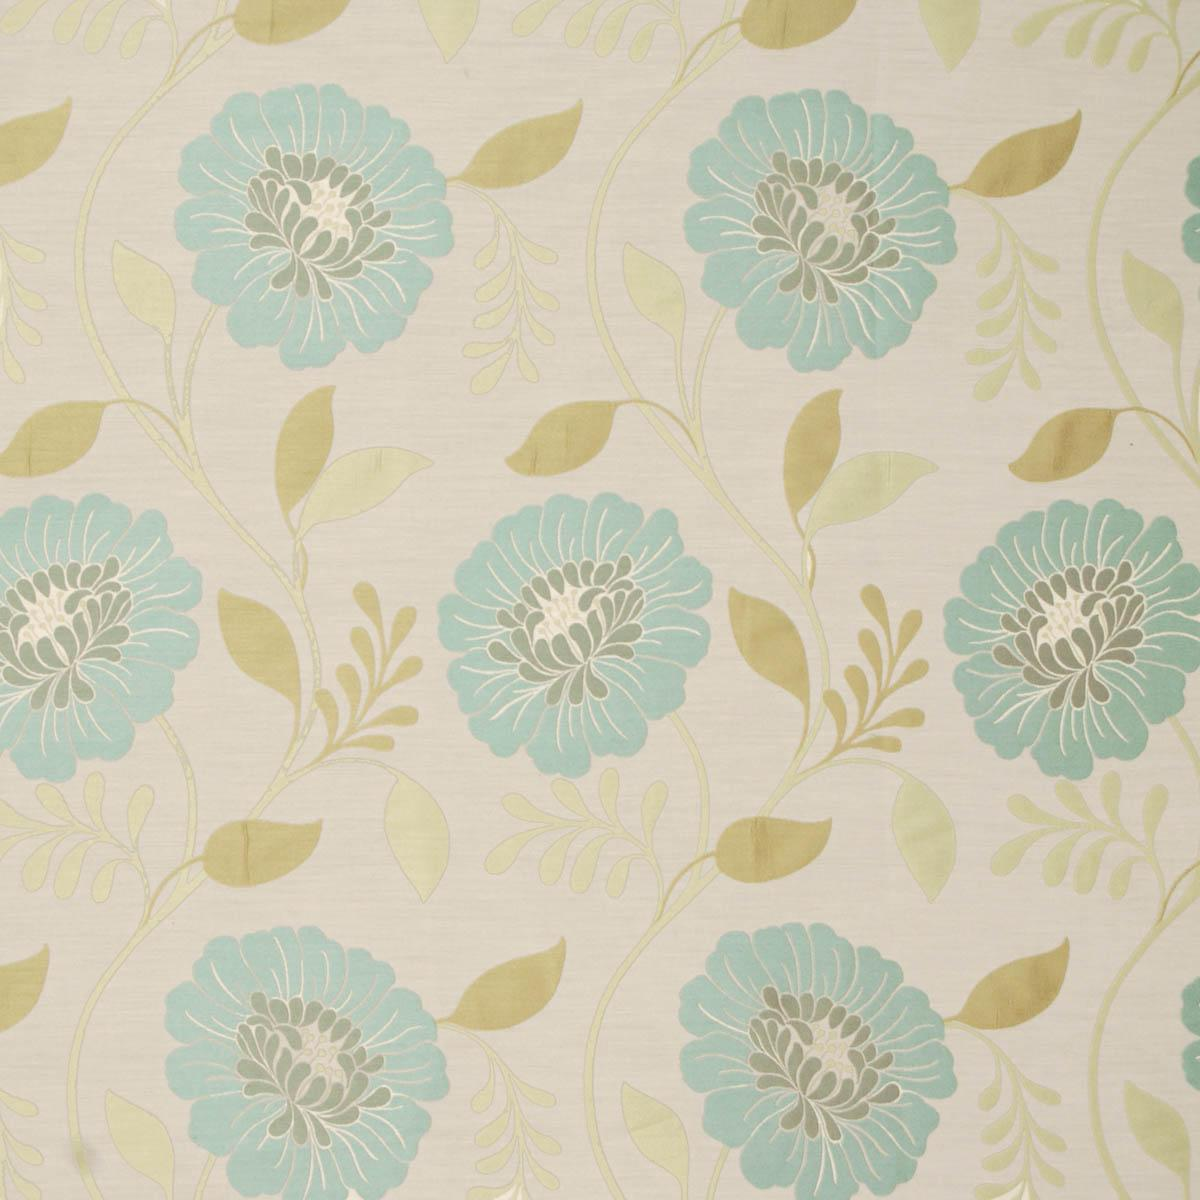 Flower curtain shop for cheap curtains blinds and save for Space fabric dunelm